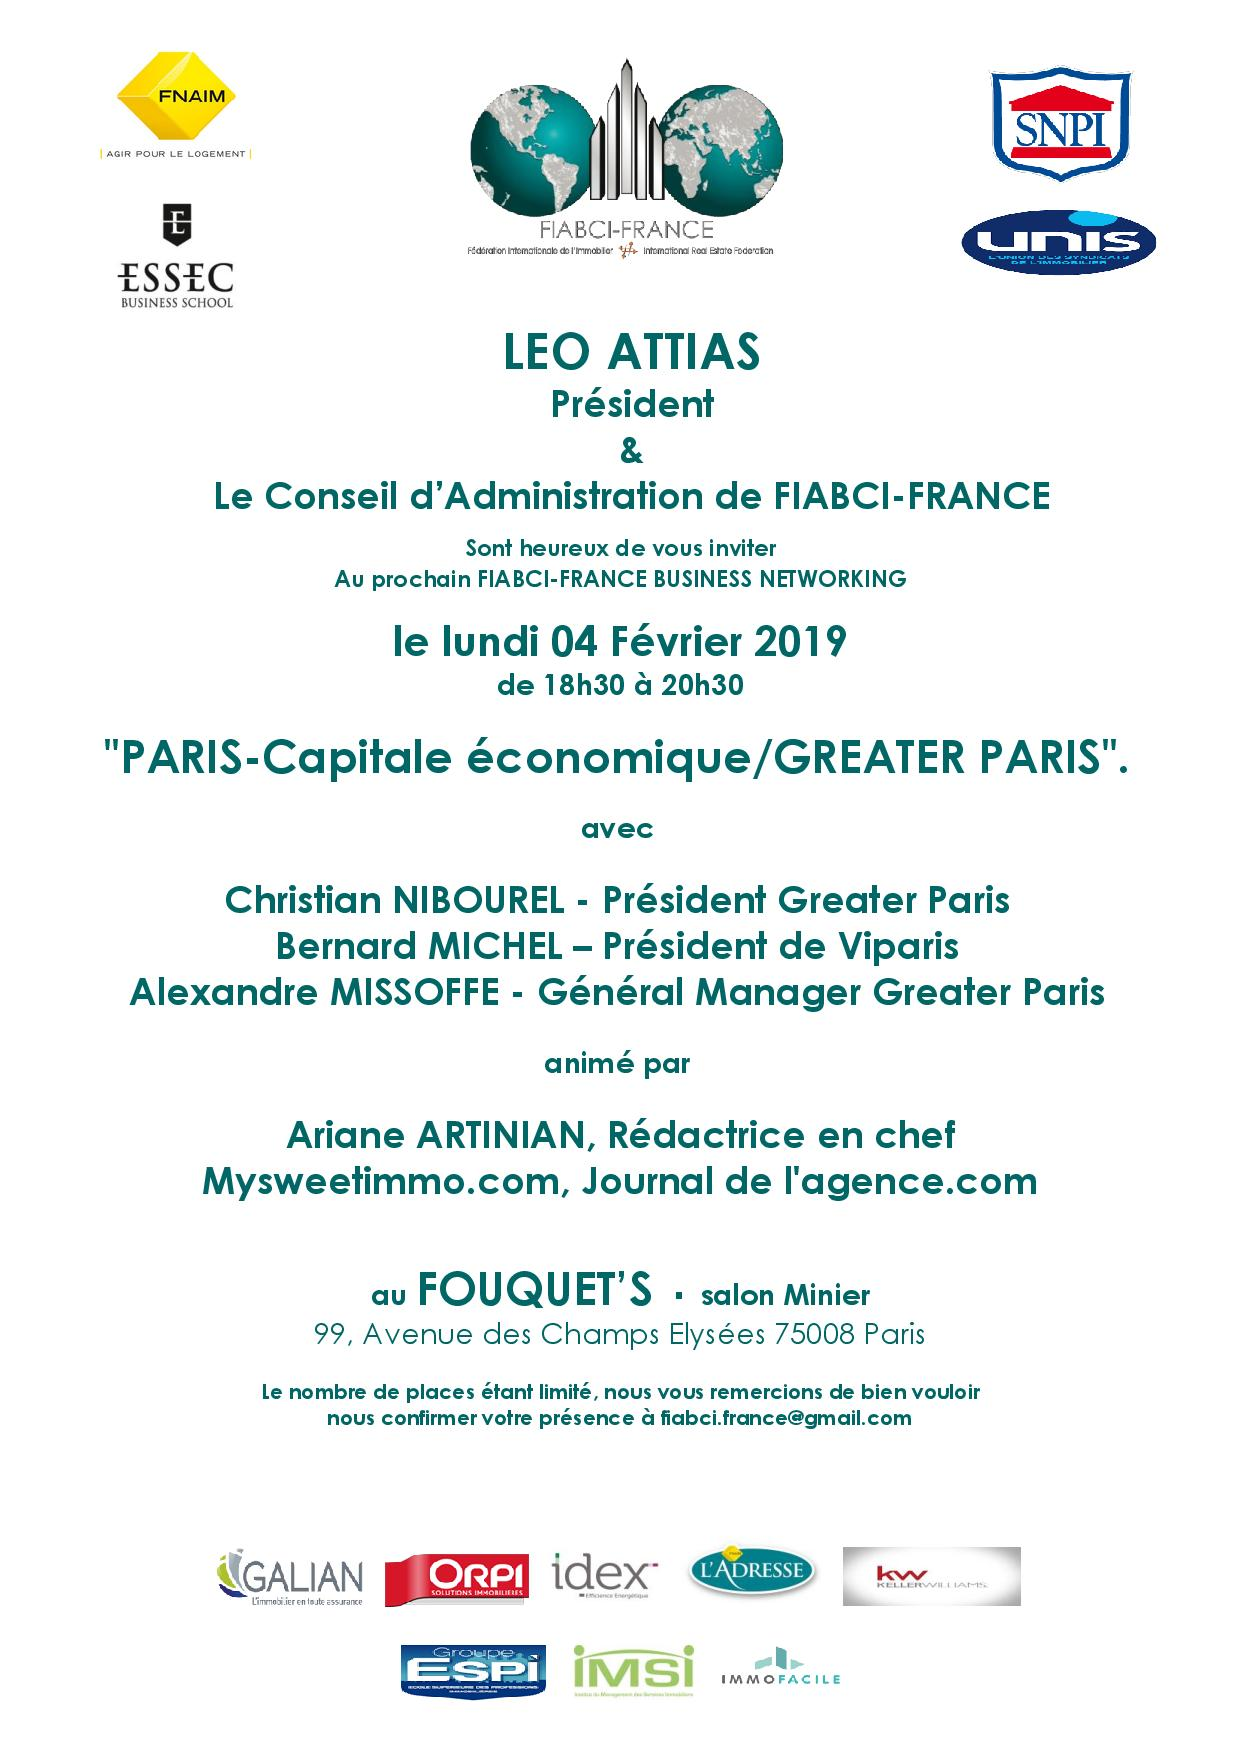 Business Networking du 04 Février 2019